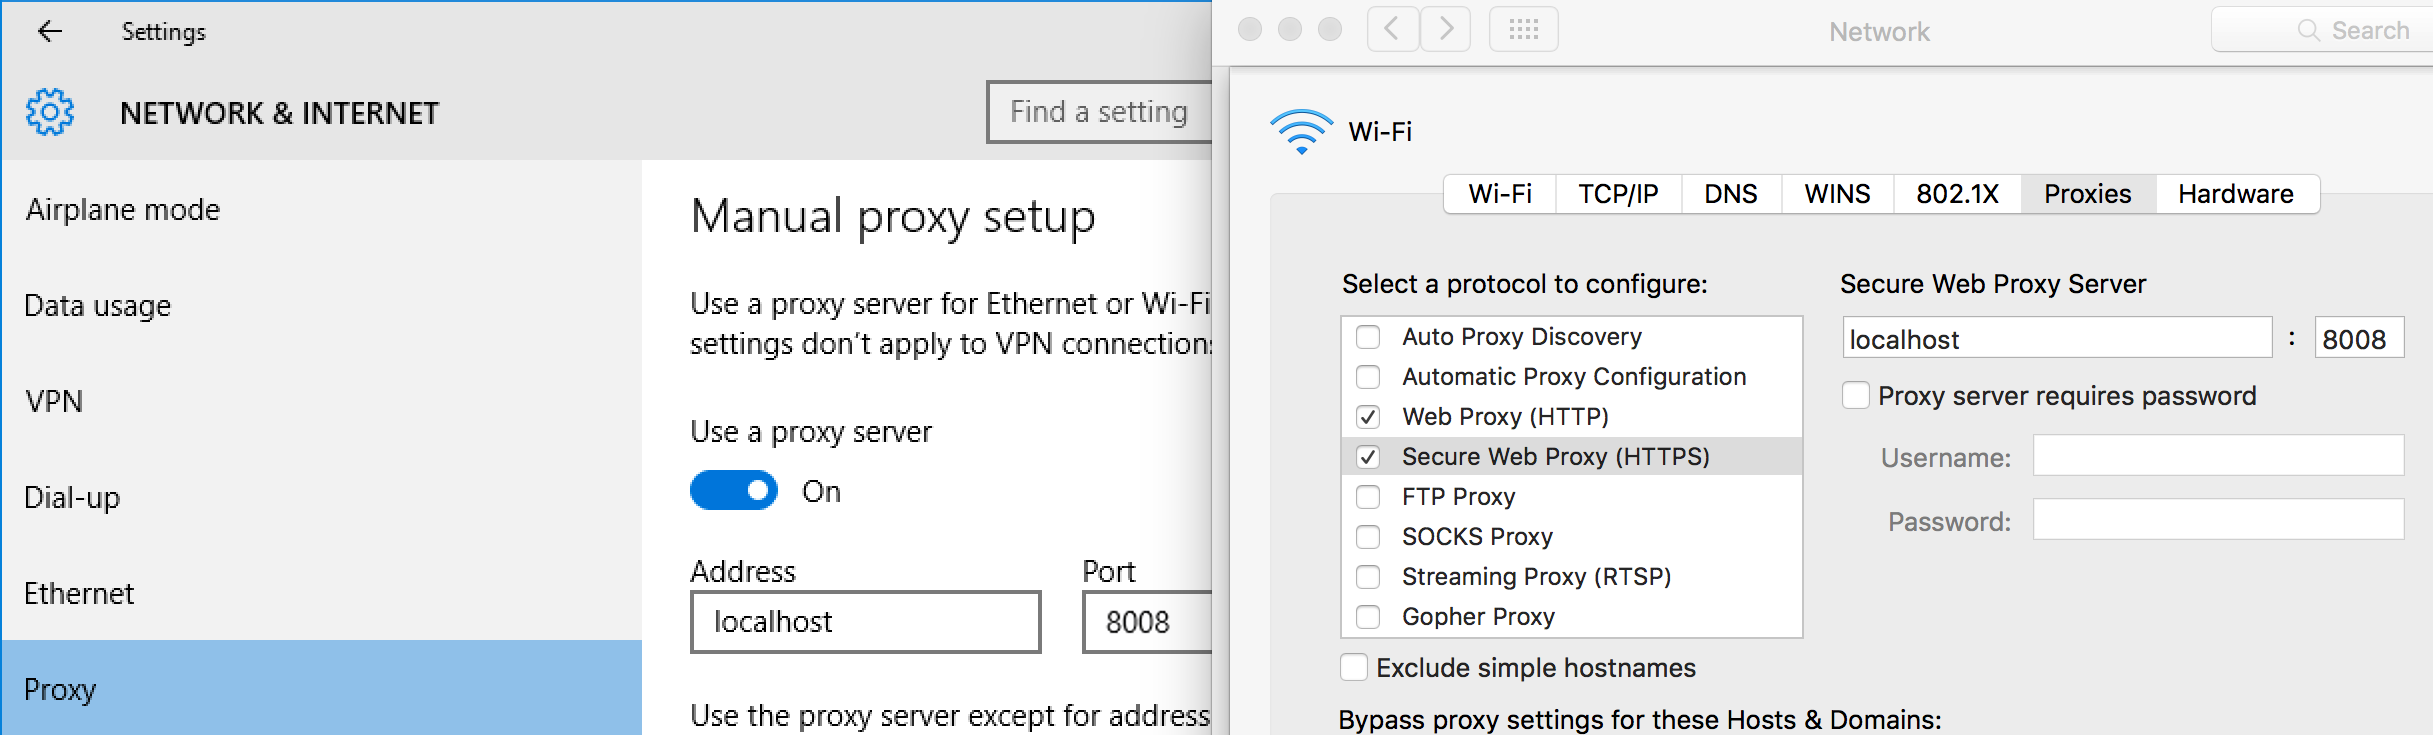 Setting up proxy on Windows 10 and macOS